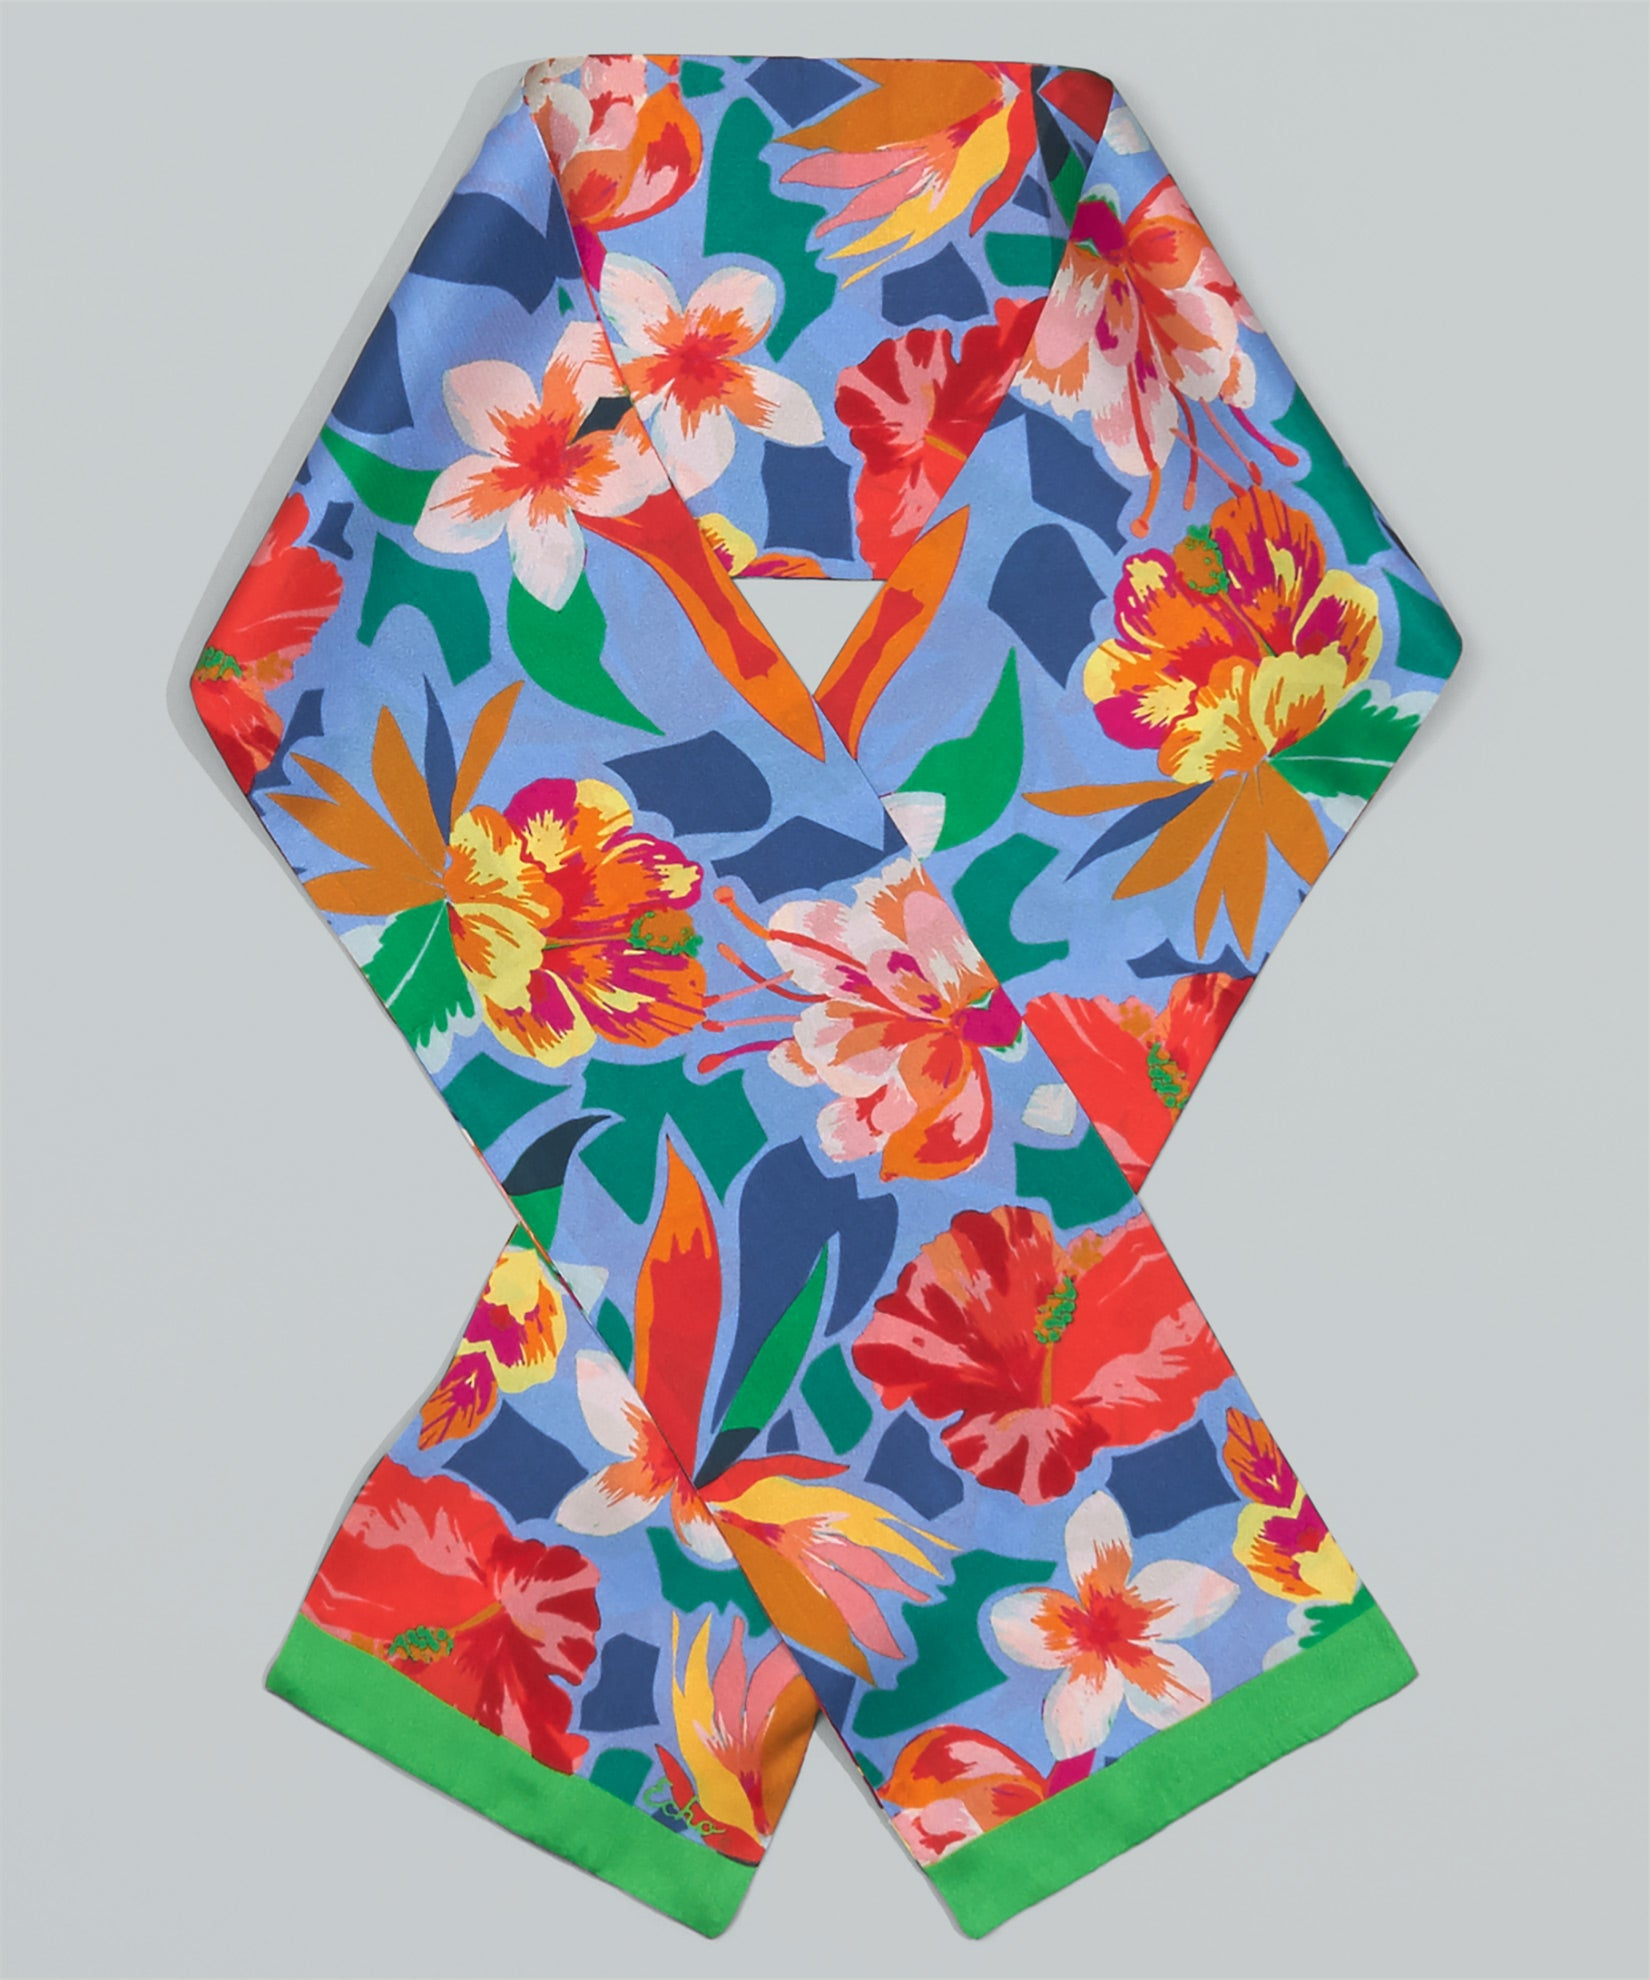 Azul - Tropic Floral Tubular Silk Oblong